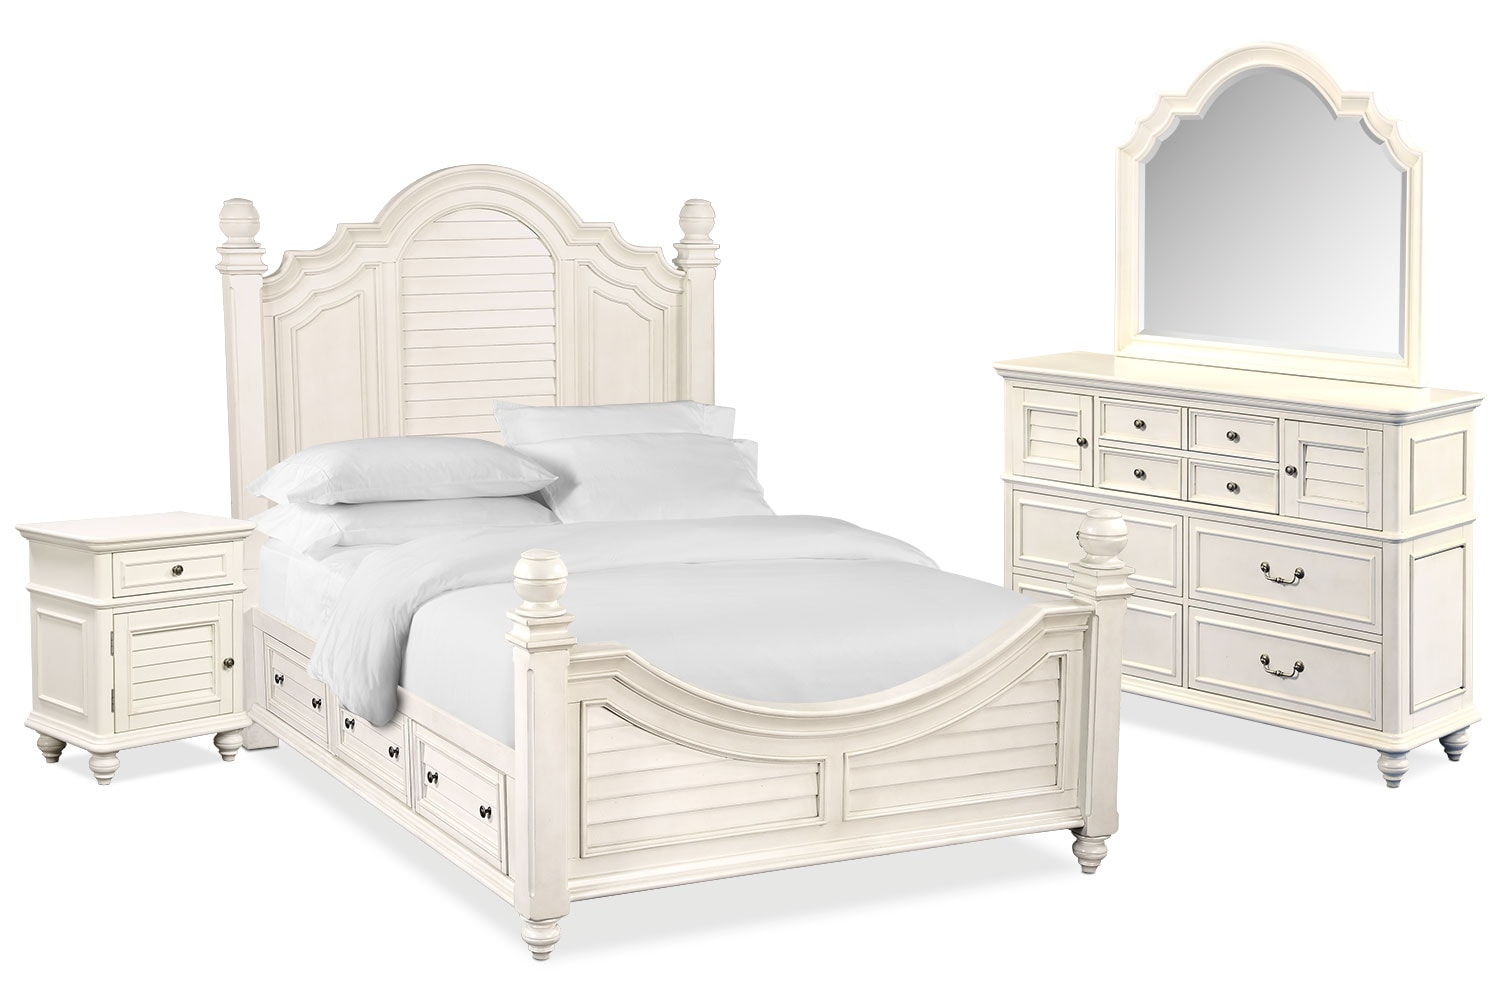 Charleston 6 piece queen poster bedroom set with 4 underbed drawers white american signature for Bedroom set with storage drawers